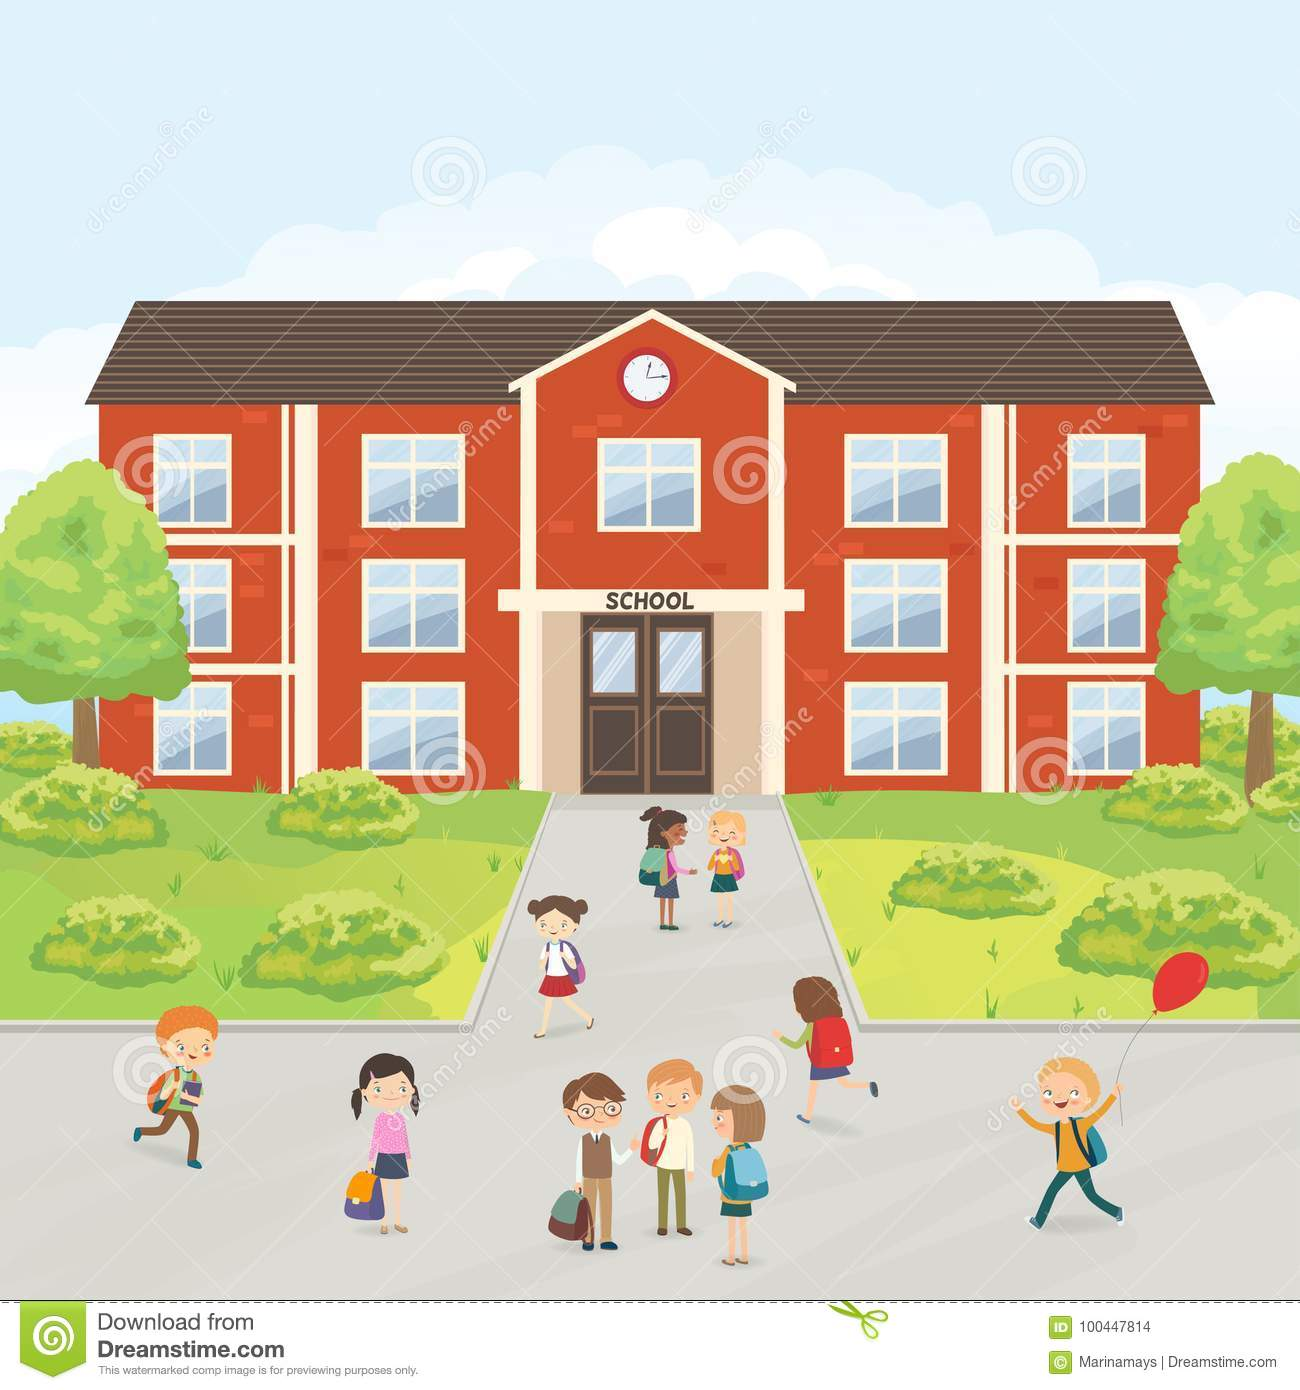 Group Of Elementary School Kids In The School Yard Stock Vector Illustration Of Primary Friendship 100447814